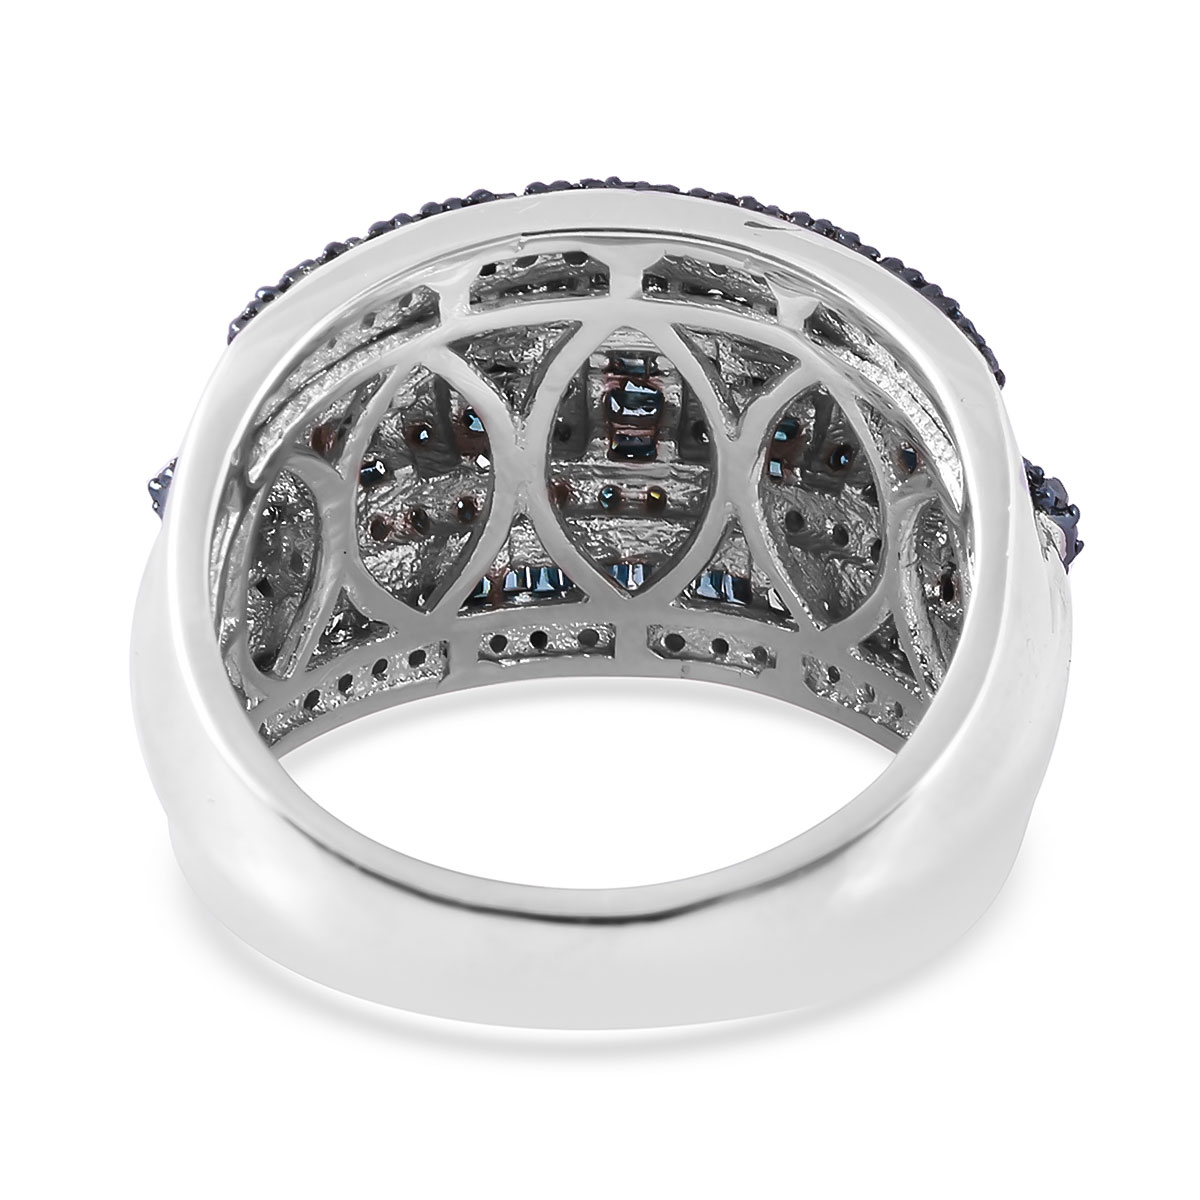 Blue Diamond (IR) Ring in Blue Rhodium & Platinum Over Sterling Silver (Size 9.0) 1.00 ctw